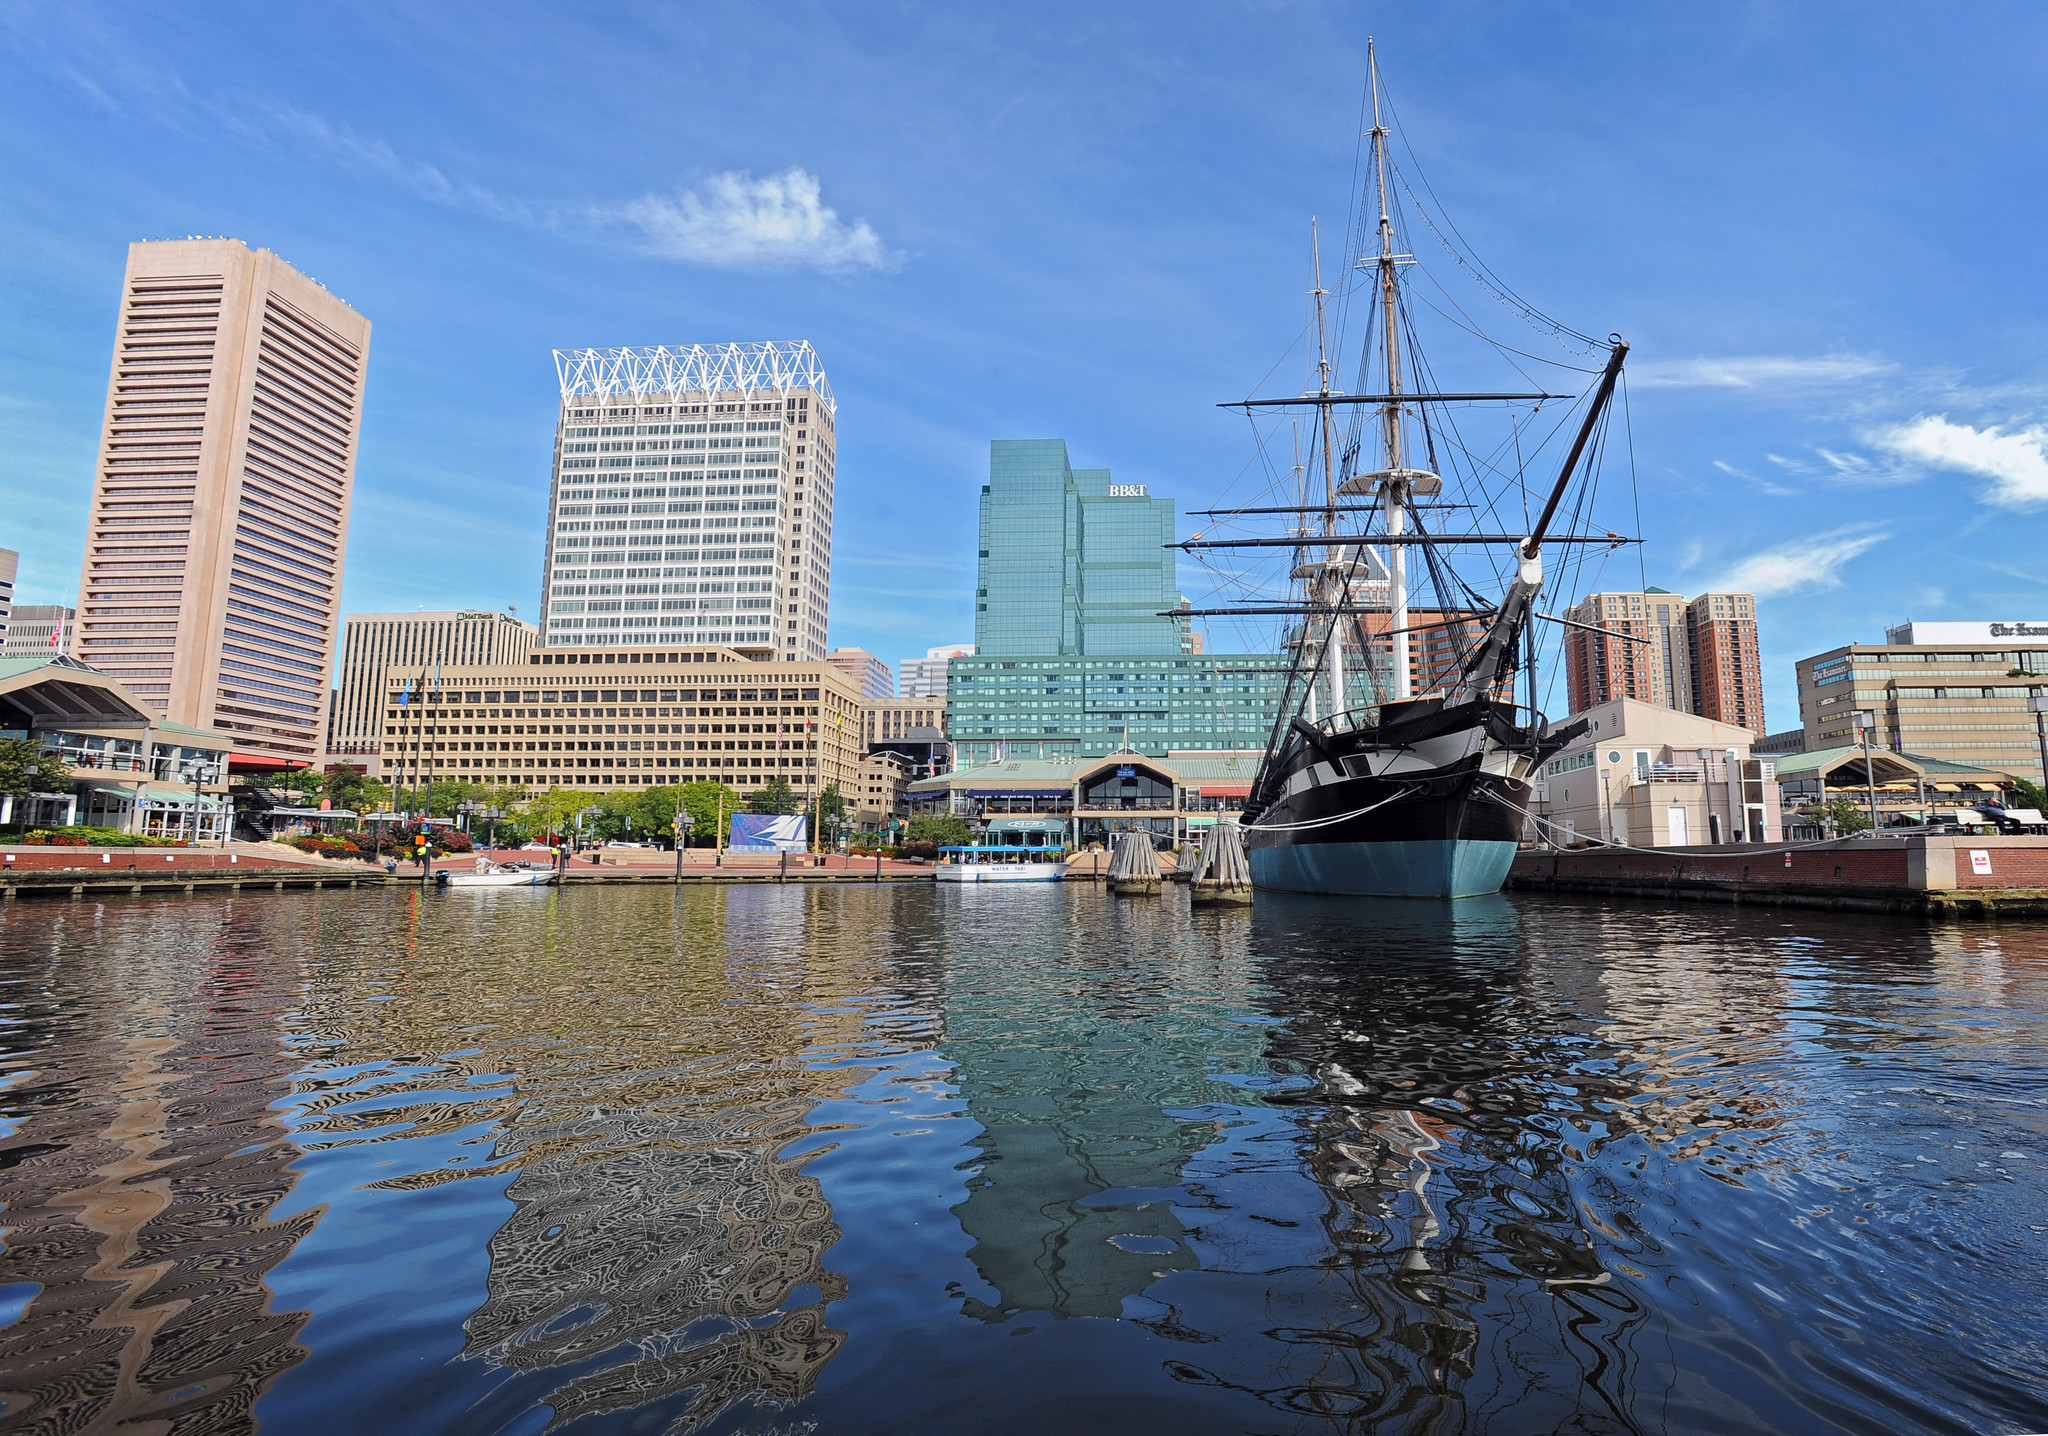 Video shows people swimming in Baltimore Inner Harbor ...